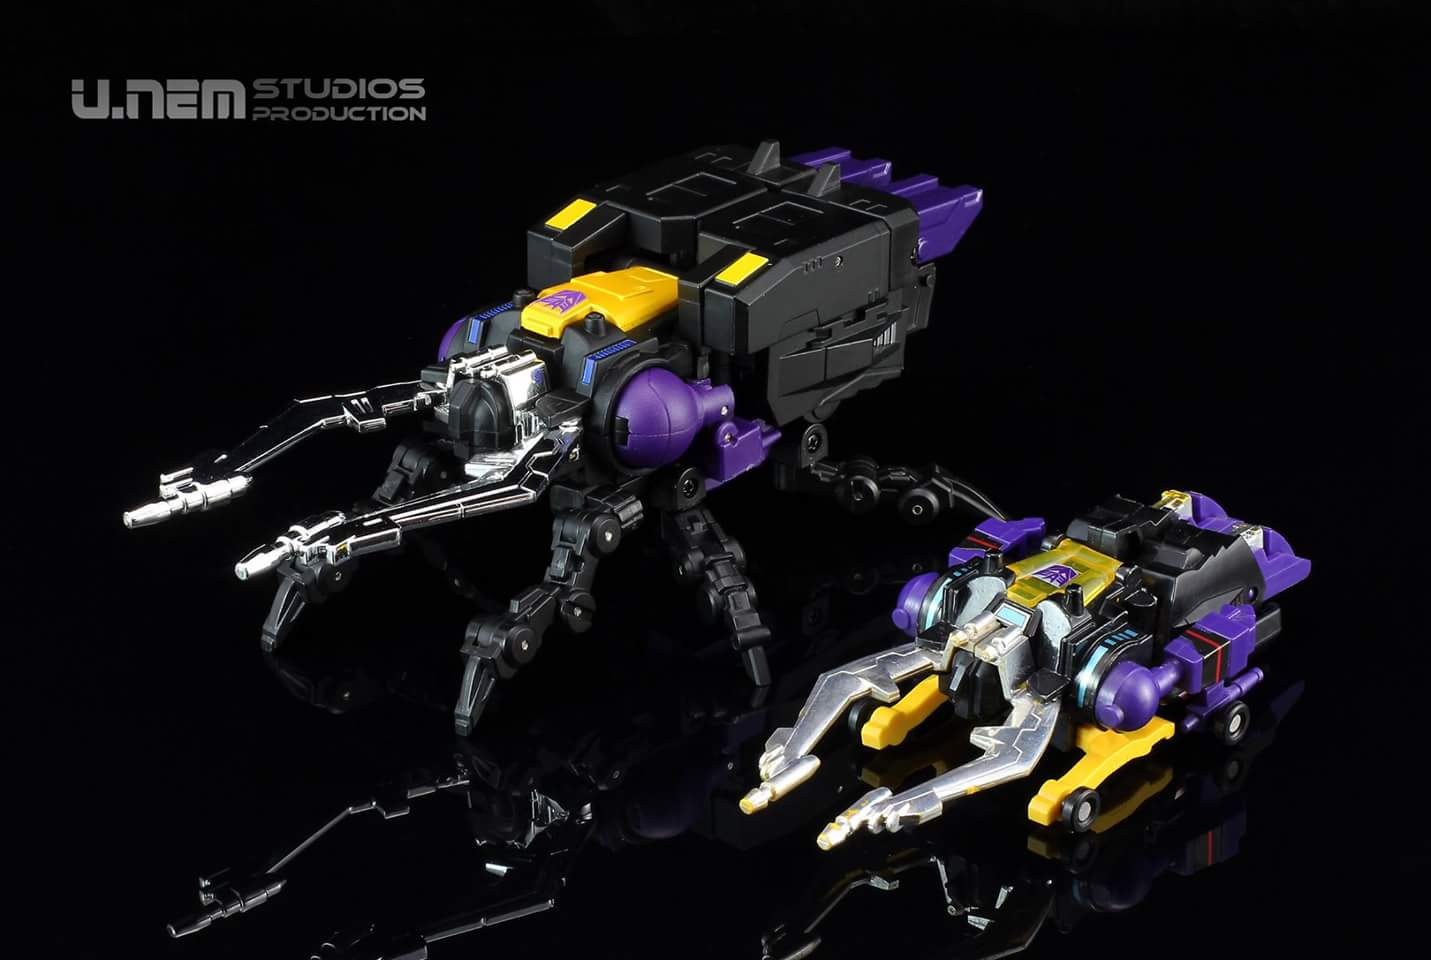 [Fanstoys] Produit Tiers - Jouet FT-12 Grenadier / FT-13 Mercenary / FT-14 Forager - aka Insecticons - Page 3 Kb7JK4T2